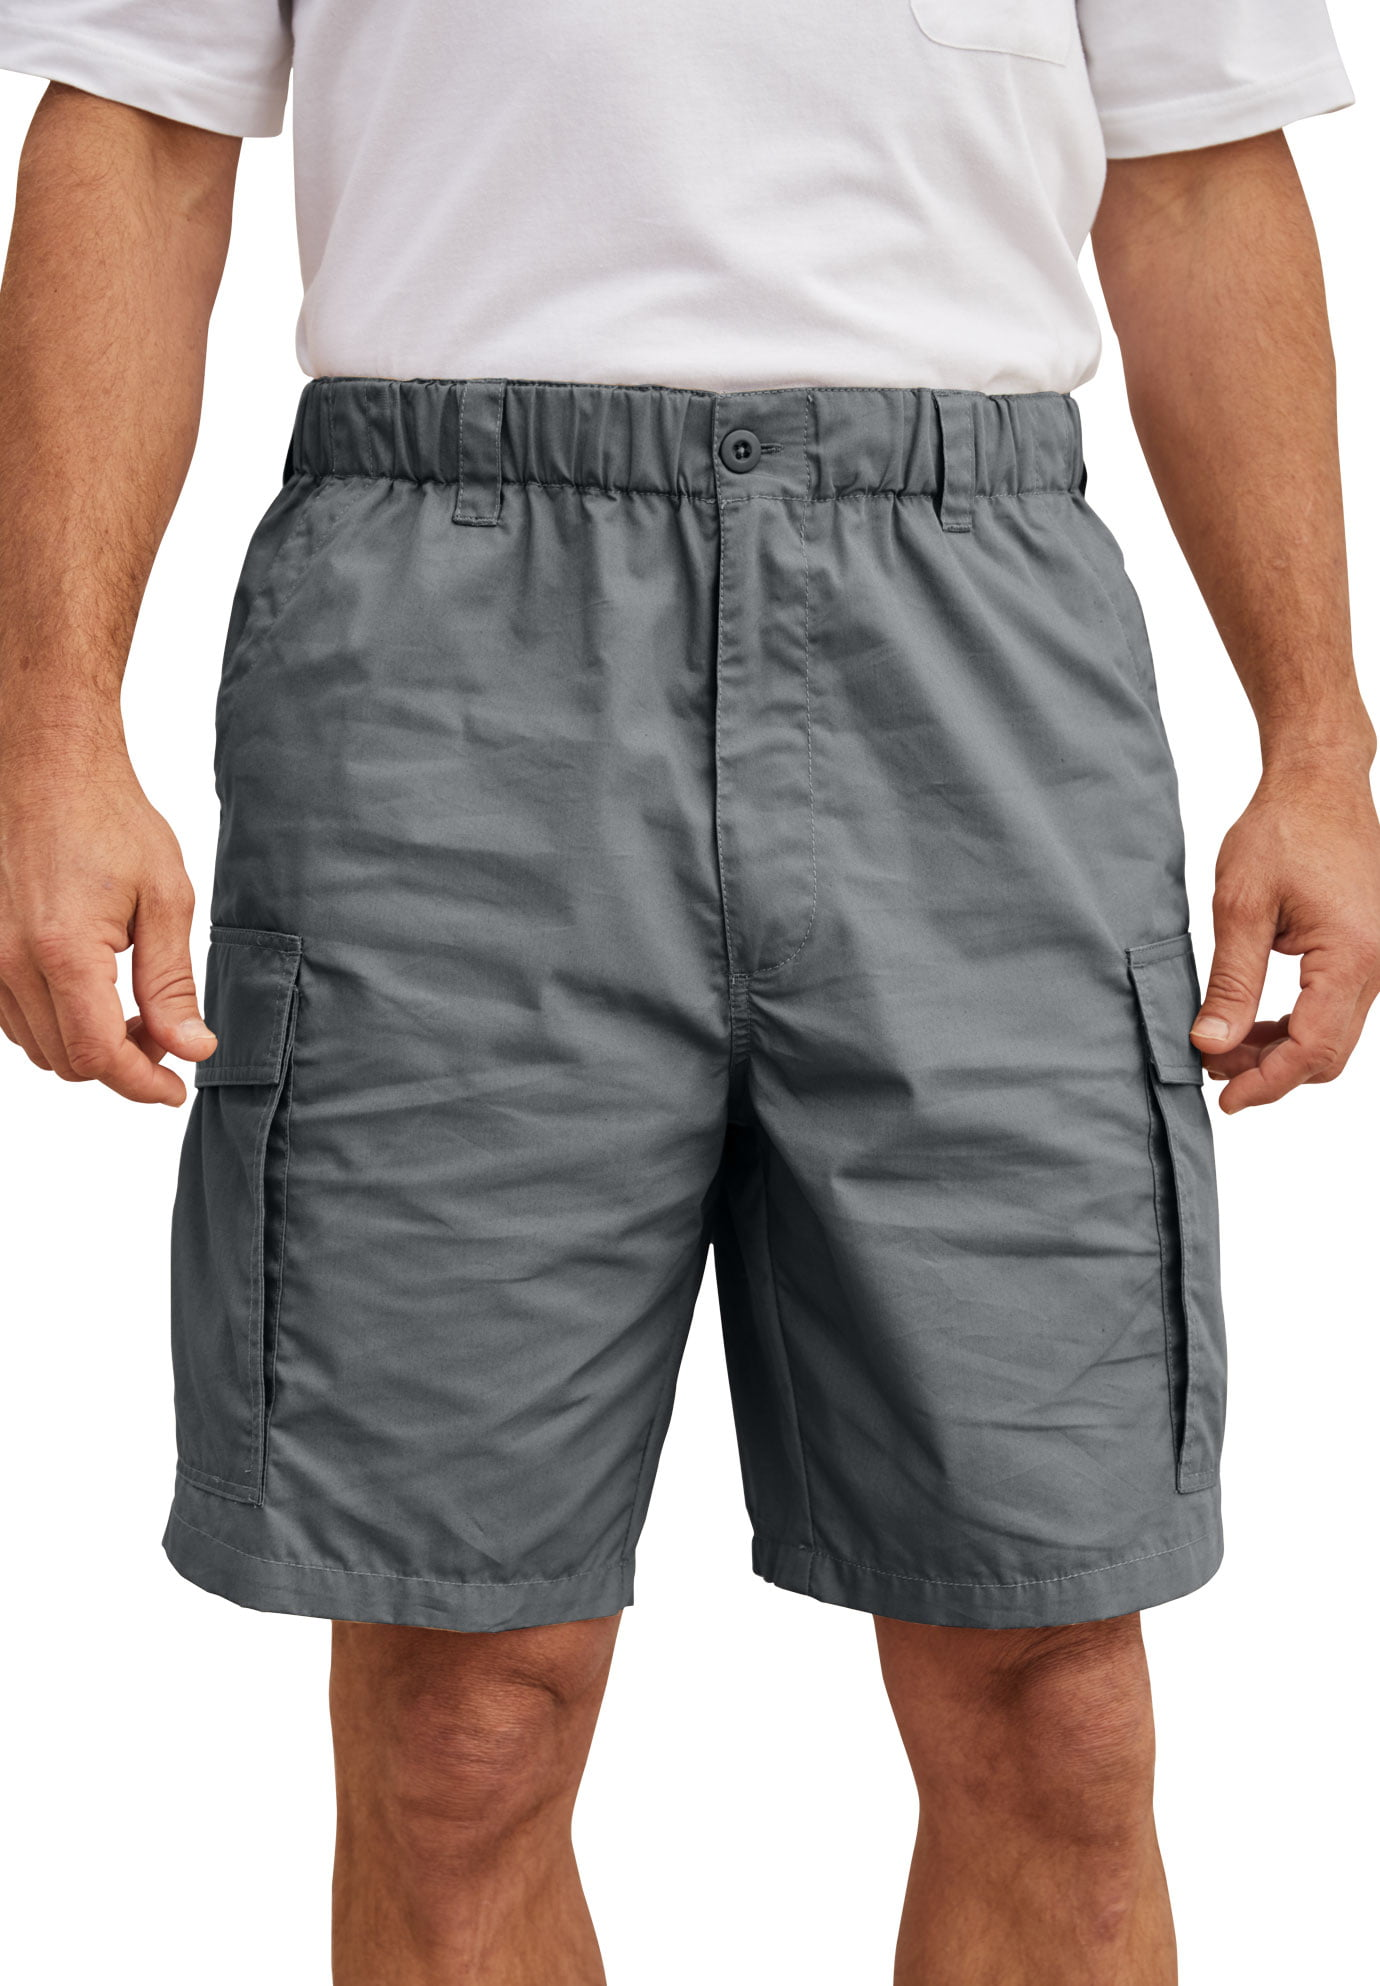 Chickle Mens 3 4 Loose-Fit Long Cargo Shorts M Army Green